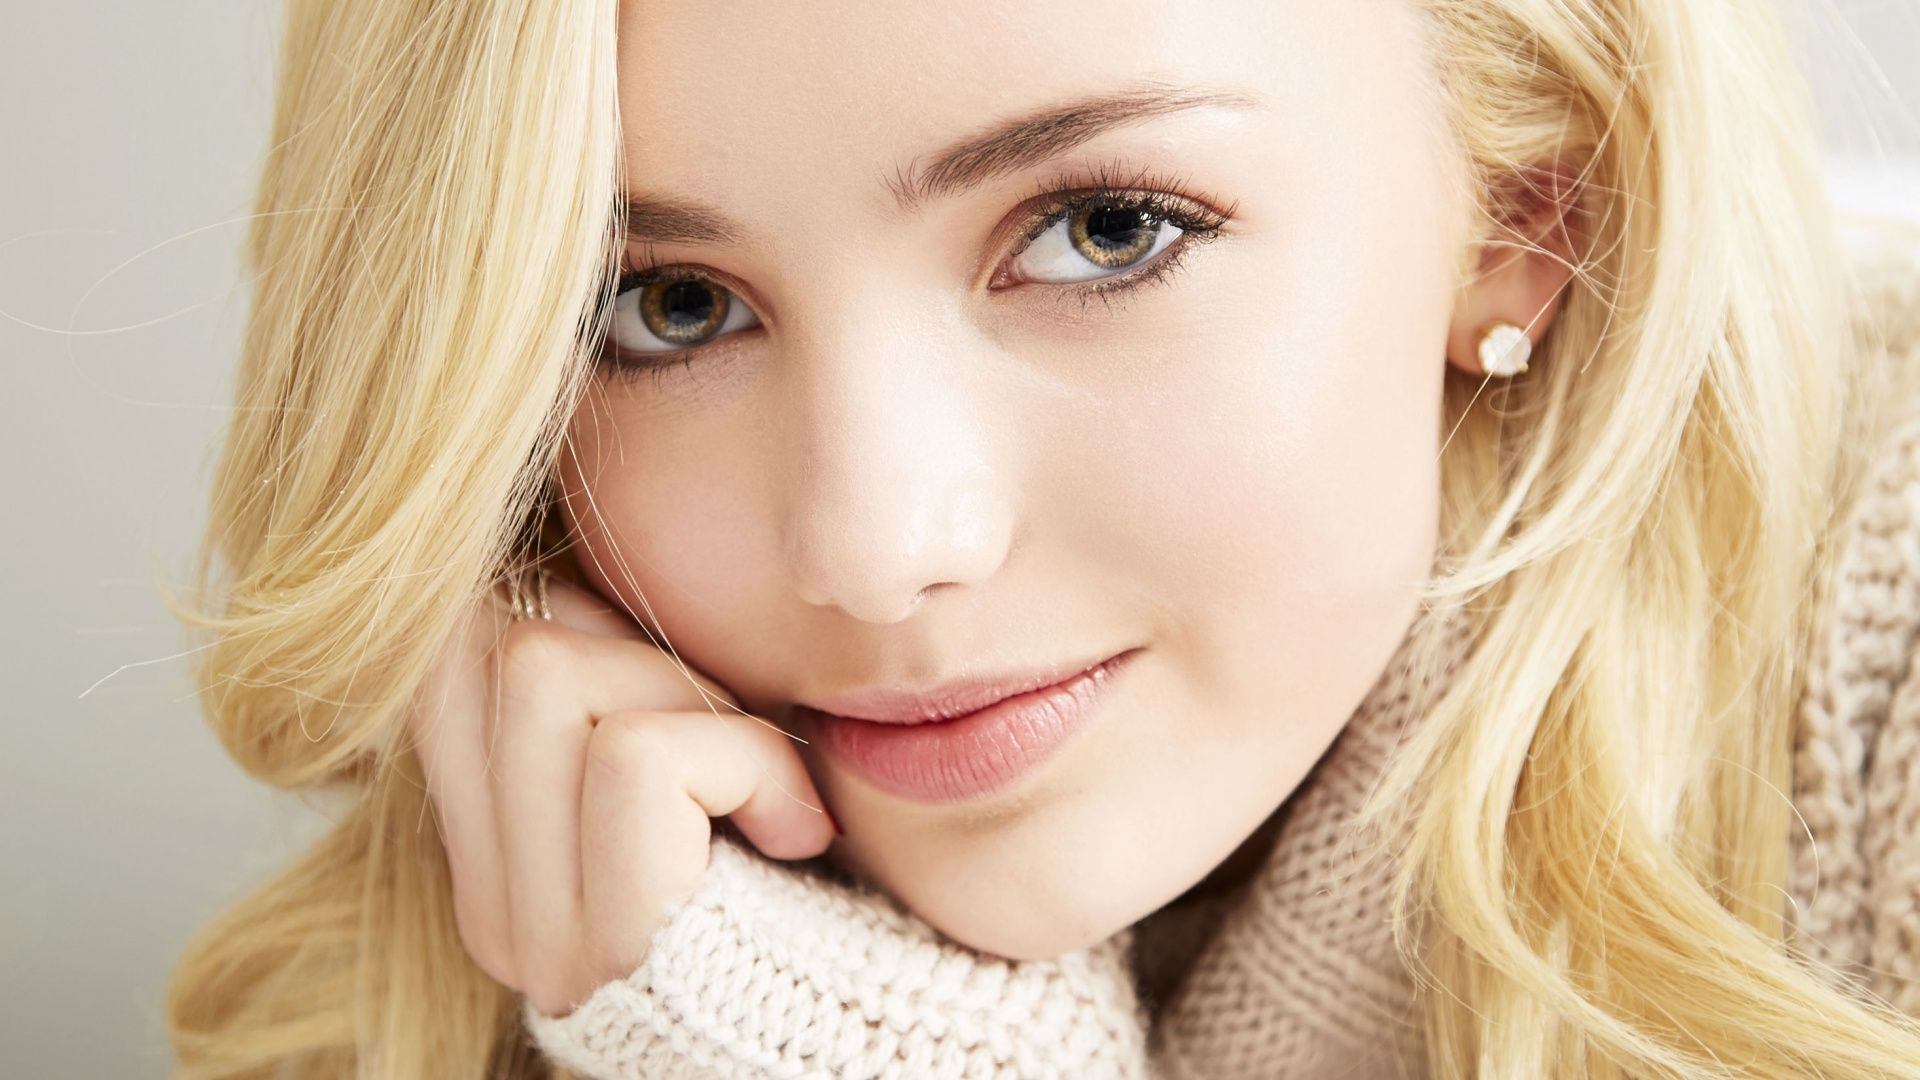 Peyton List Wallpapers Top Free Peyton List Backgrounds Wallpaperaccess The content in this app is not affiliated with, endorsed, sponsored, or specifically. peyton list wallpapers top free